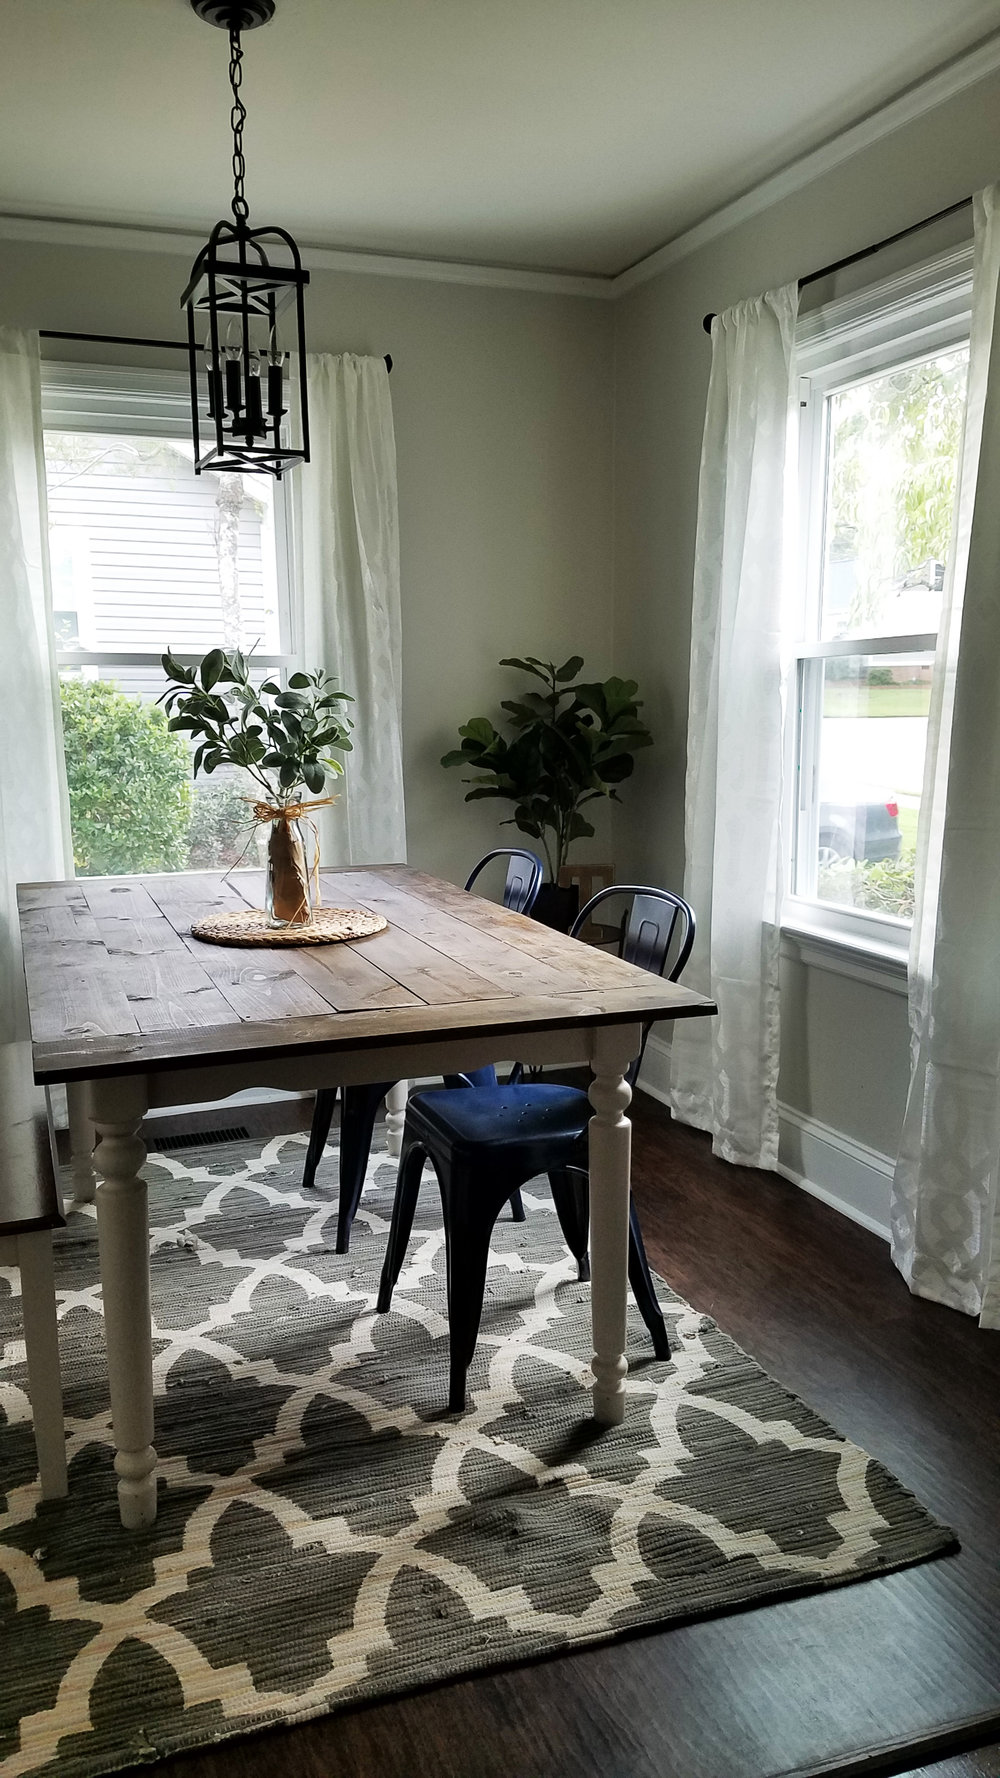 Haymount Homes Historical Fayetteville House NC Glenville Ave dining room 2